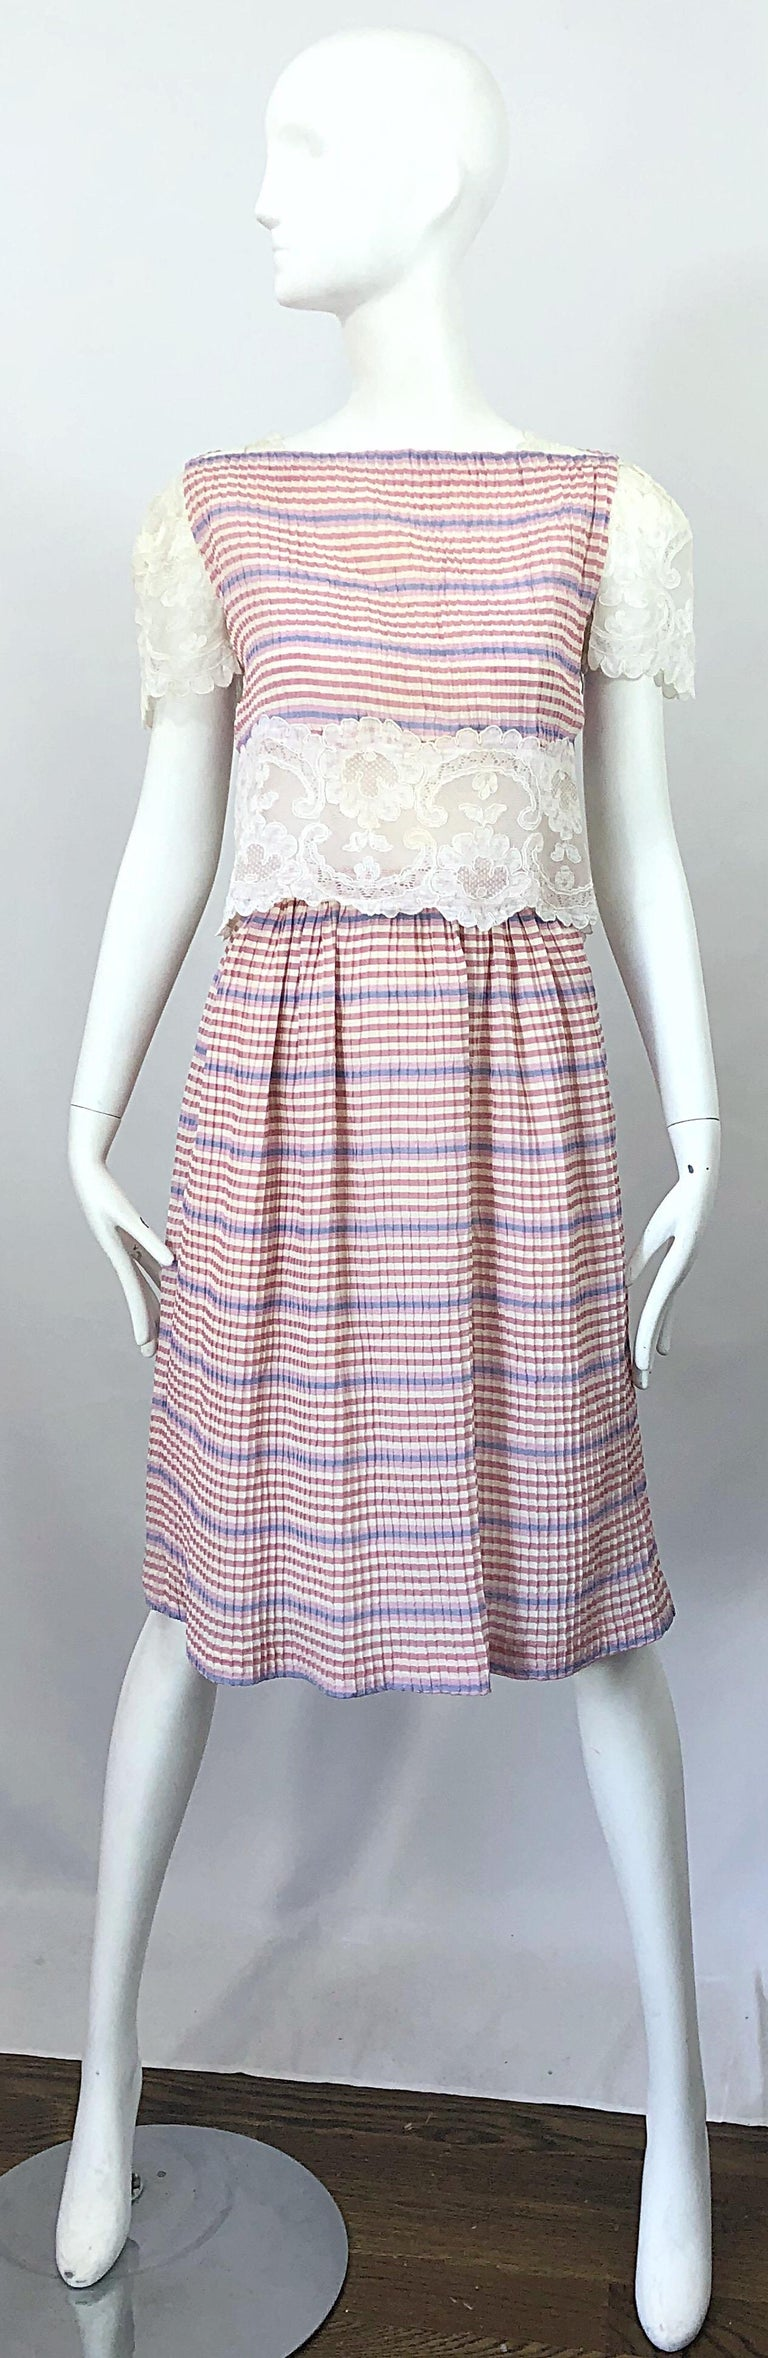 Bob Mackie 1970s Stripes Size 4 Silk + Lace Vintage 70s Crop Top and Skirt Dress For Sale 12